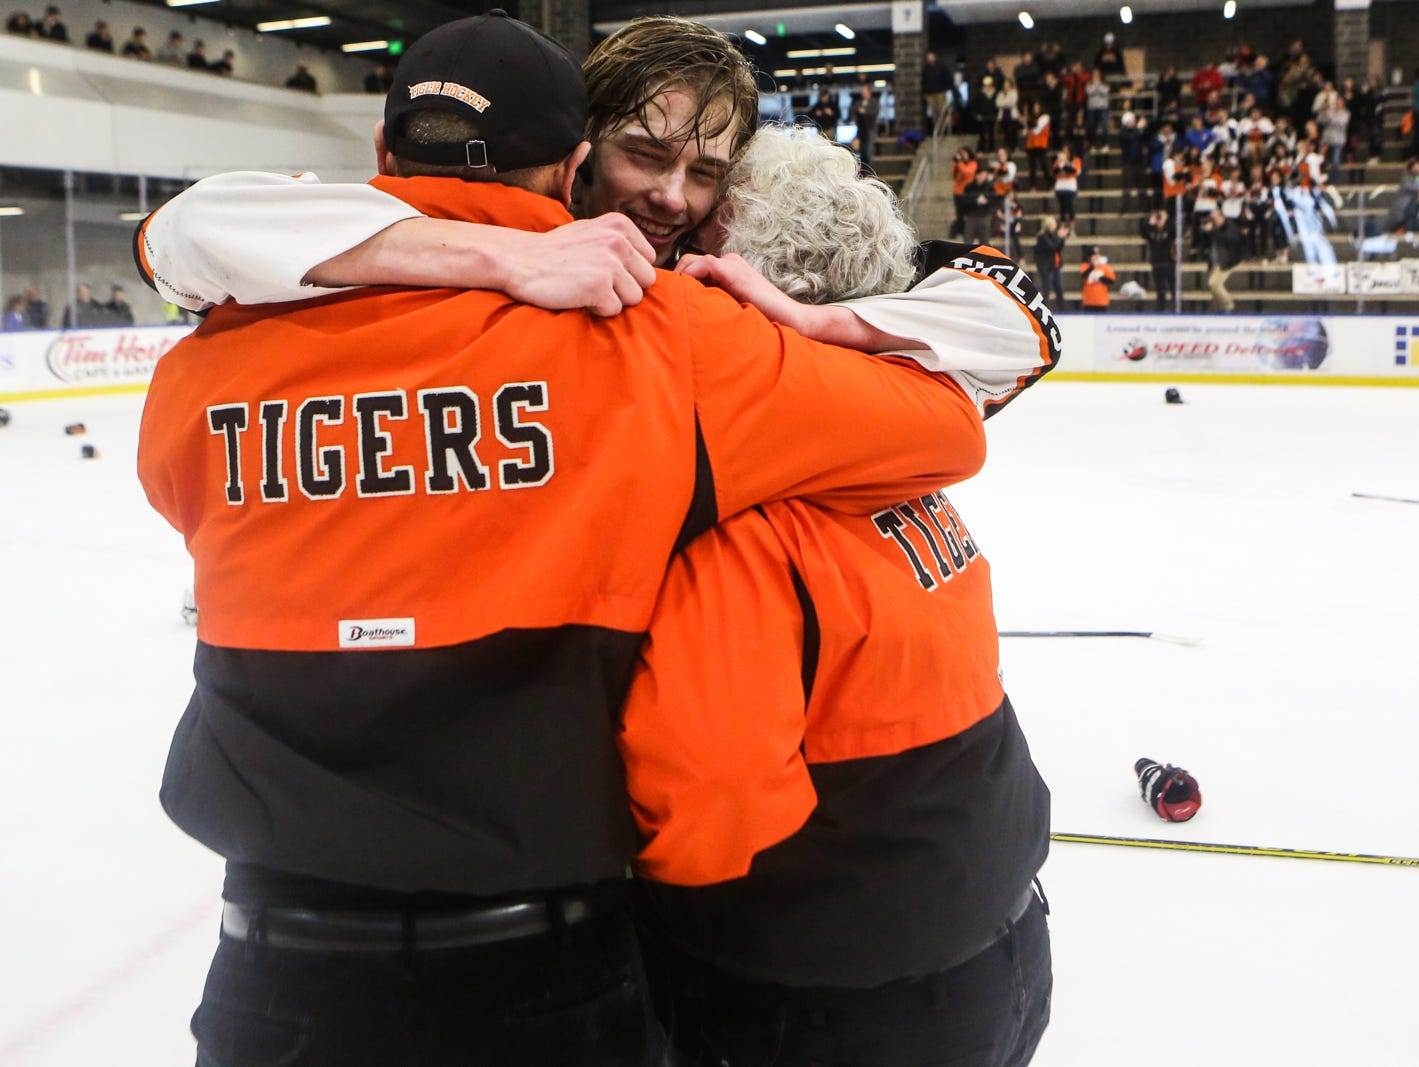 Mamaroneck's Alex Ewald (center) hugs Head Coach Michael Chiapparelli (right) and Assistant coach Art Bruno after winning the game. Mamaroneck defeated West Genesee 1-0 and won the NYSPHSAA Division 1 HarborCenter in Buffalo, NY.